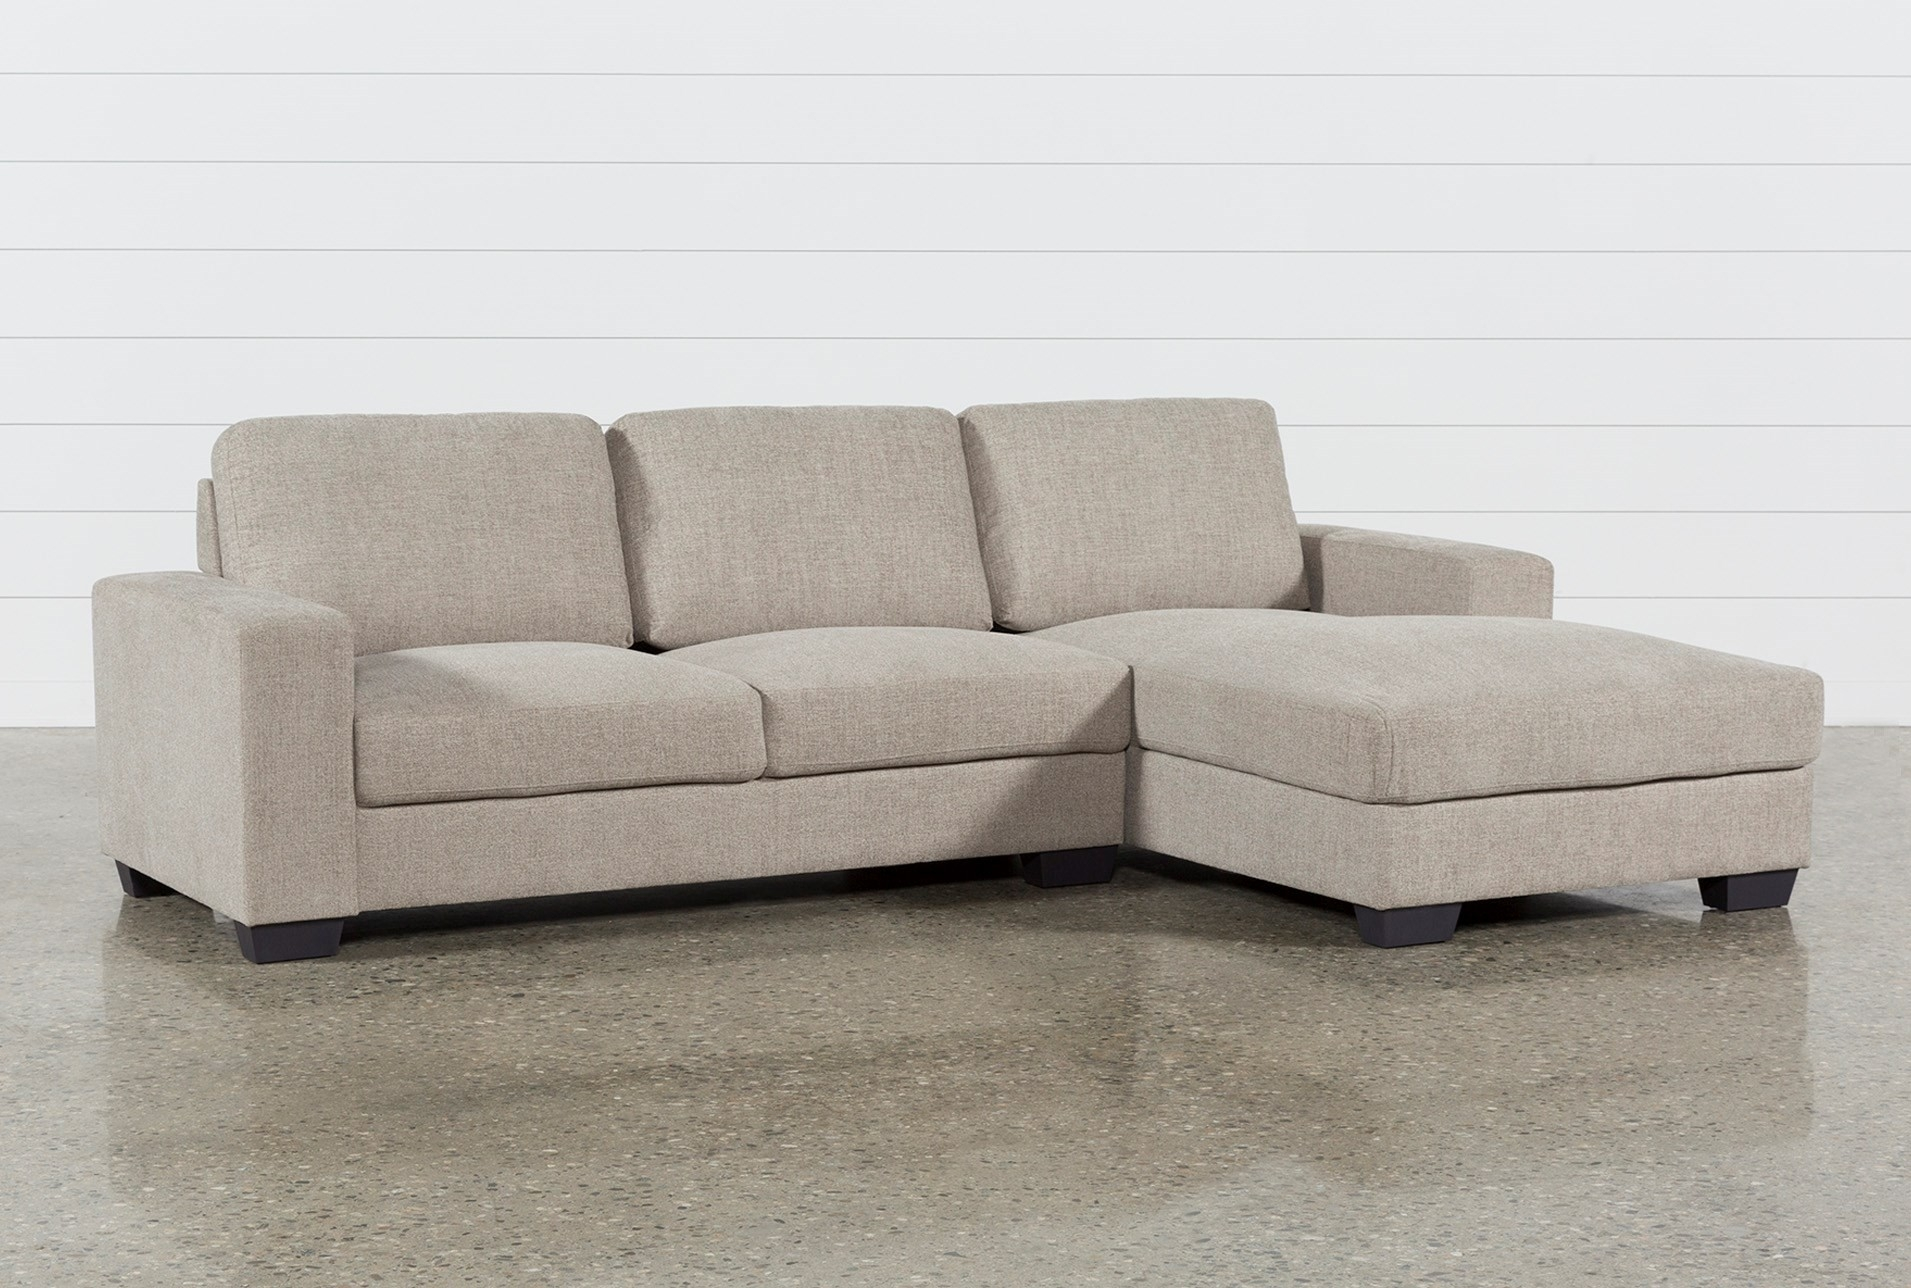 Sectional With 2 Chaises - Implantologiabogota.co within Tenny Dark Grey 2 Piece Right Facing Chaise Sectionals With 2 Headrest (Image 23 of 30)